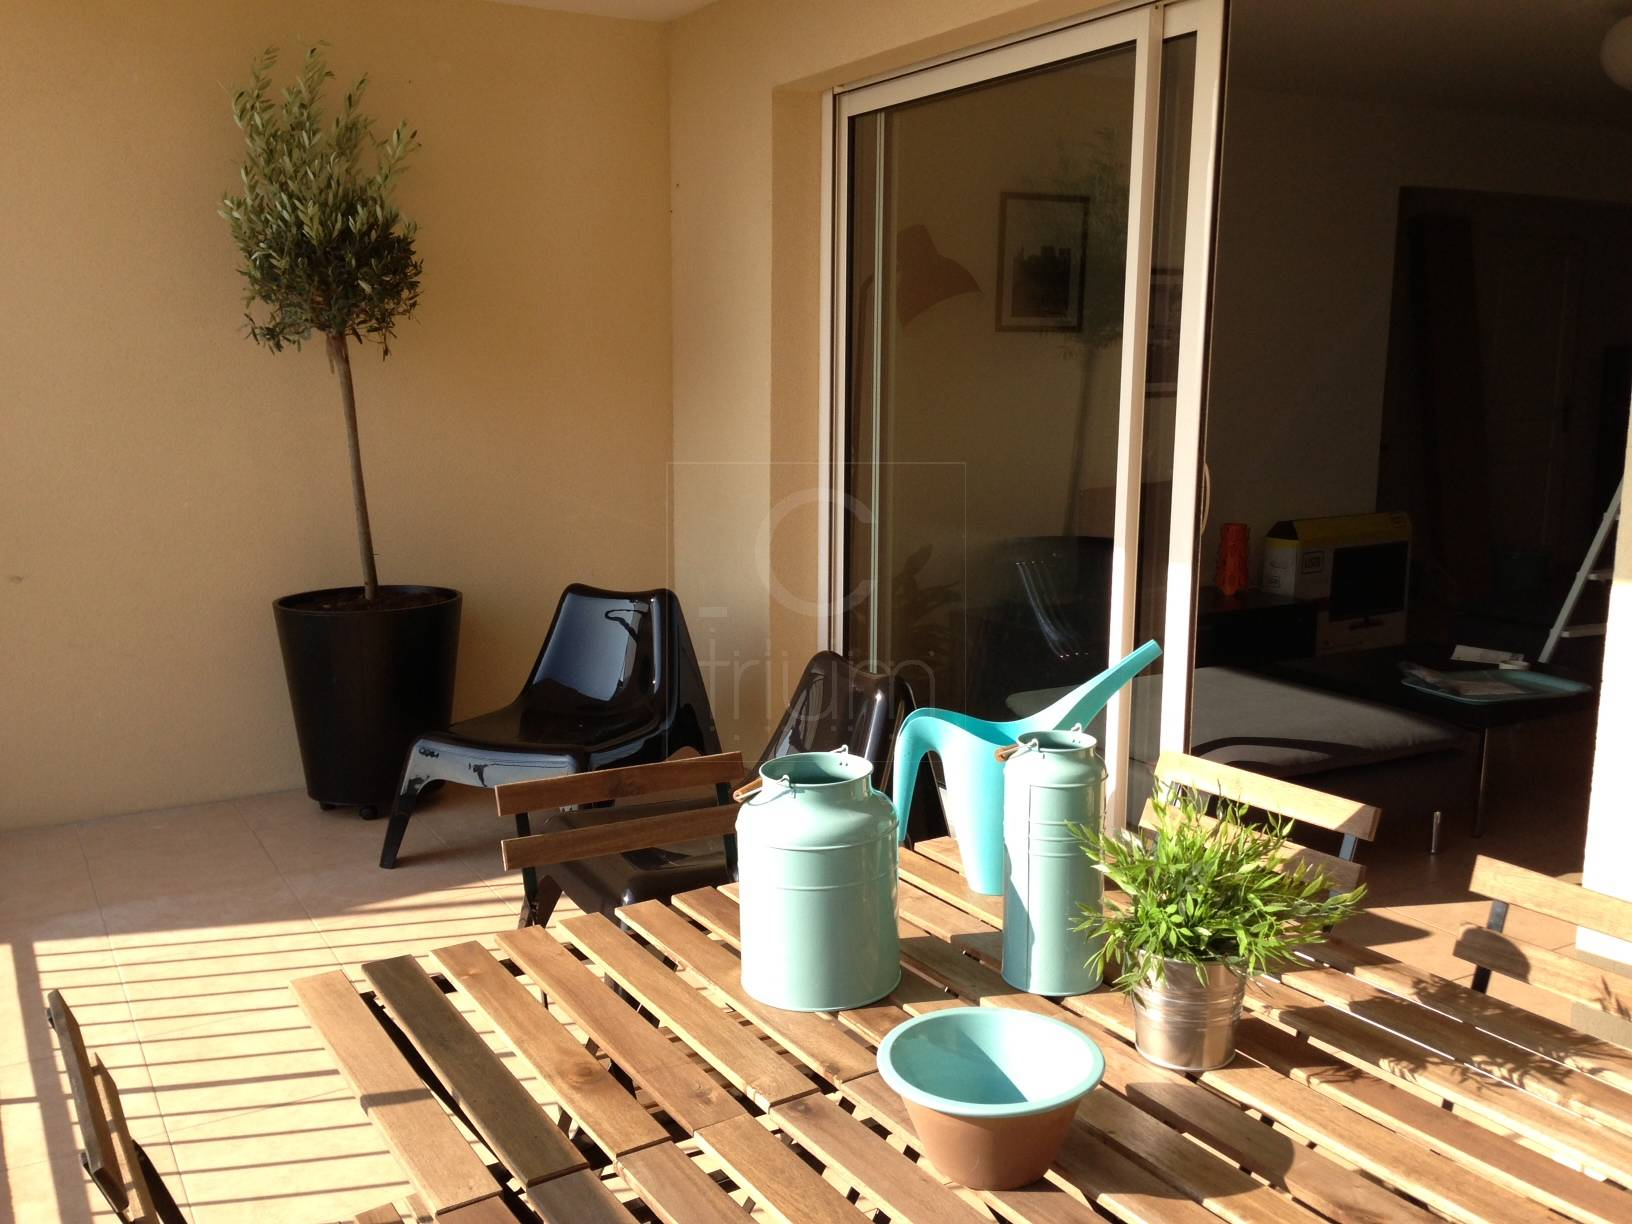 Location appartement t4 f4 marseille 7eme bompard terrasse for Appartement t4 avec terrasse marseille